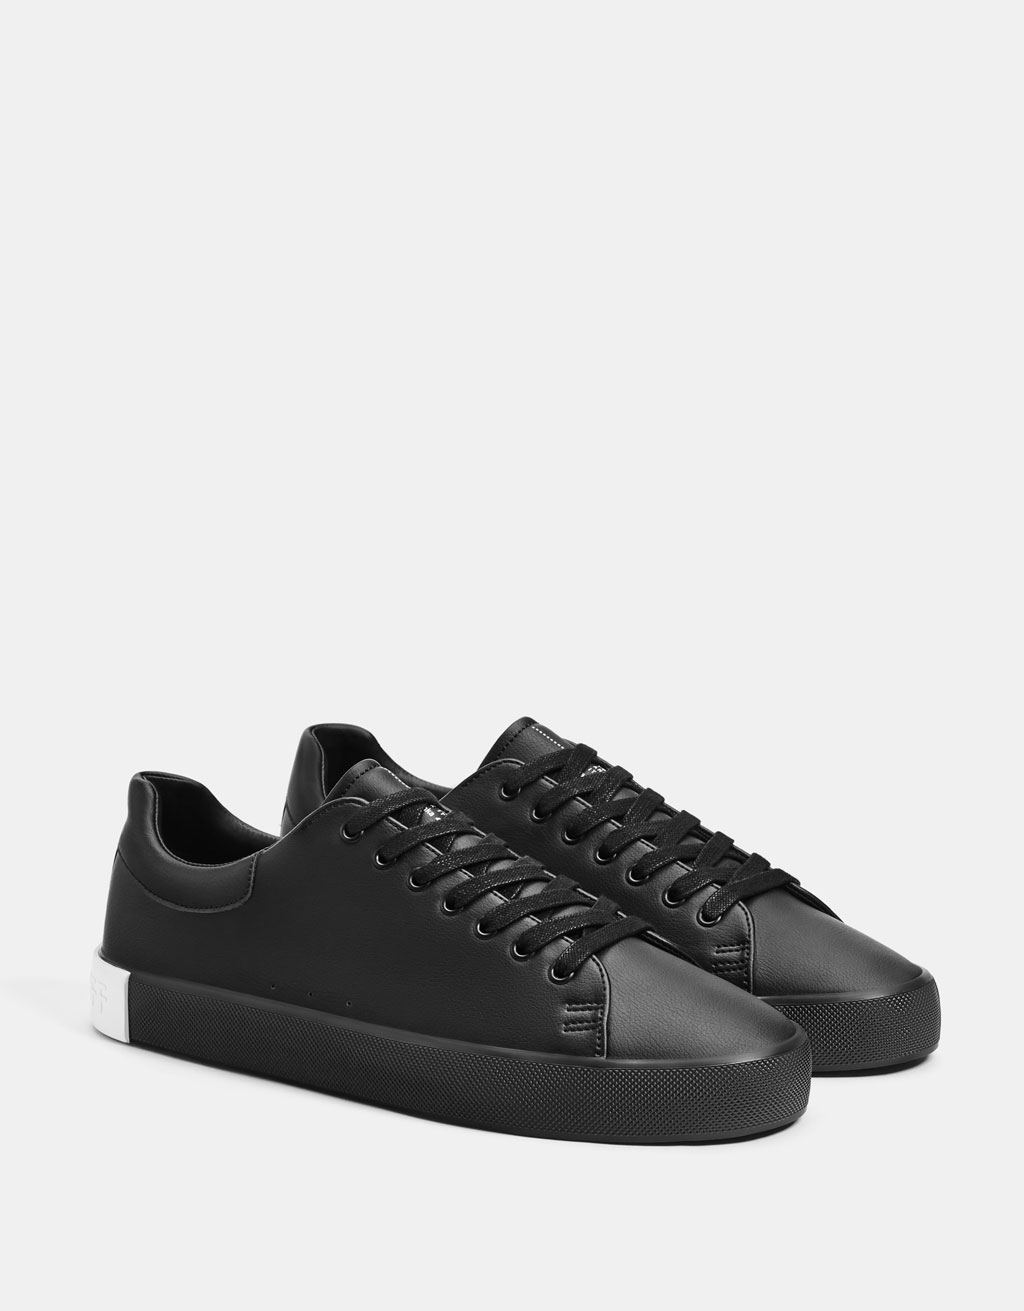 Solid colour black message men's trainers